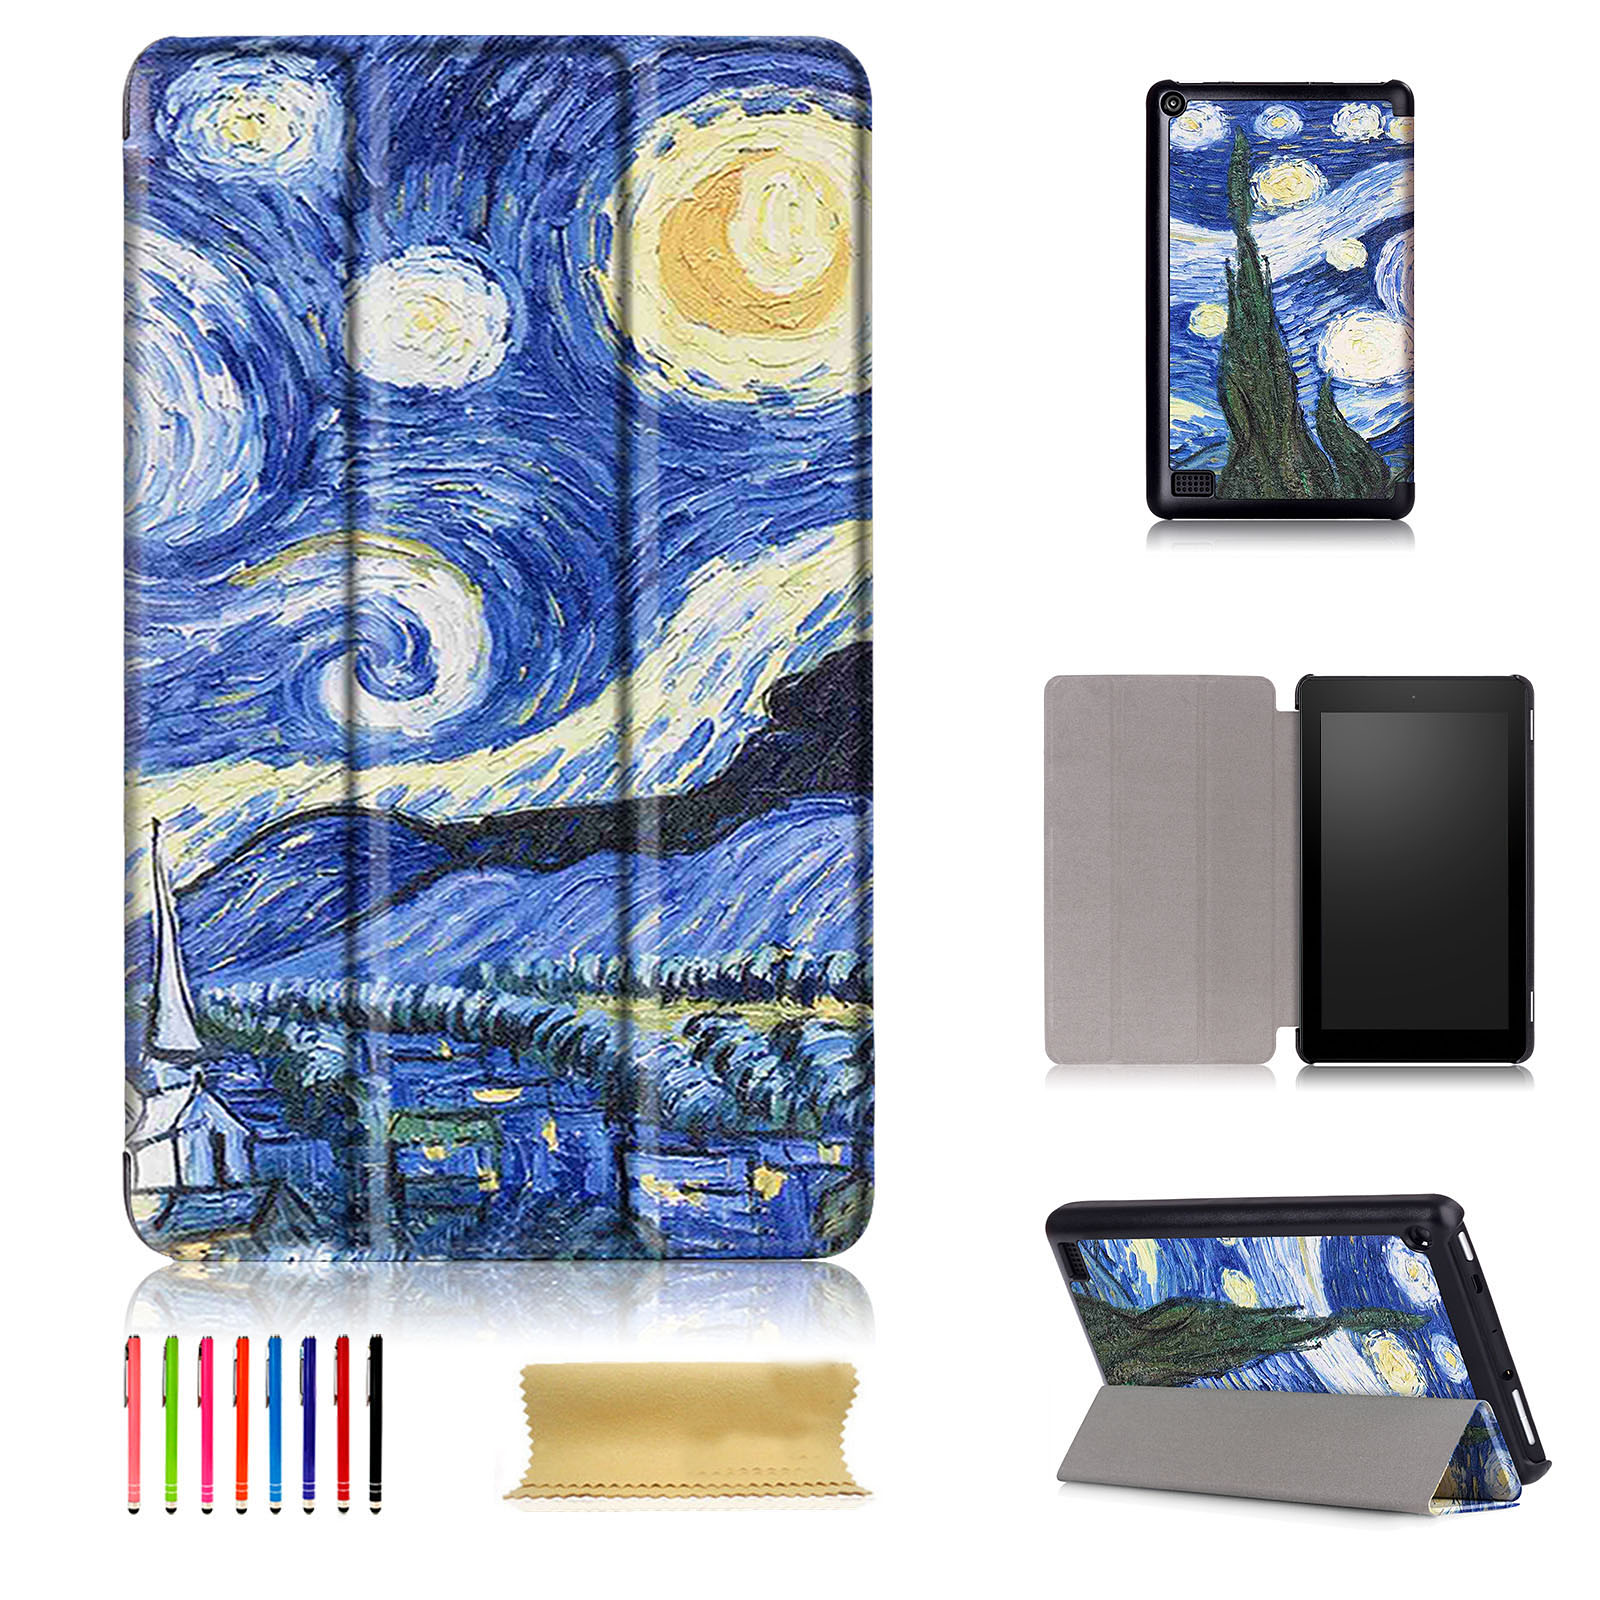 Pu leather folio case cover skin stand for amazon kindle for Amazon casa